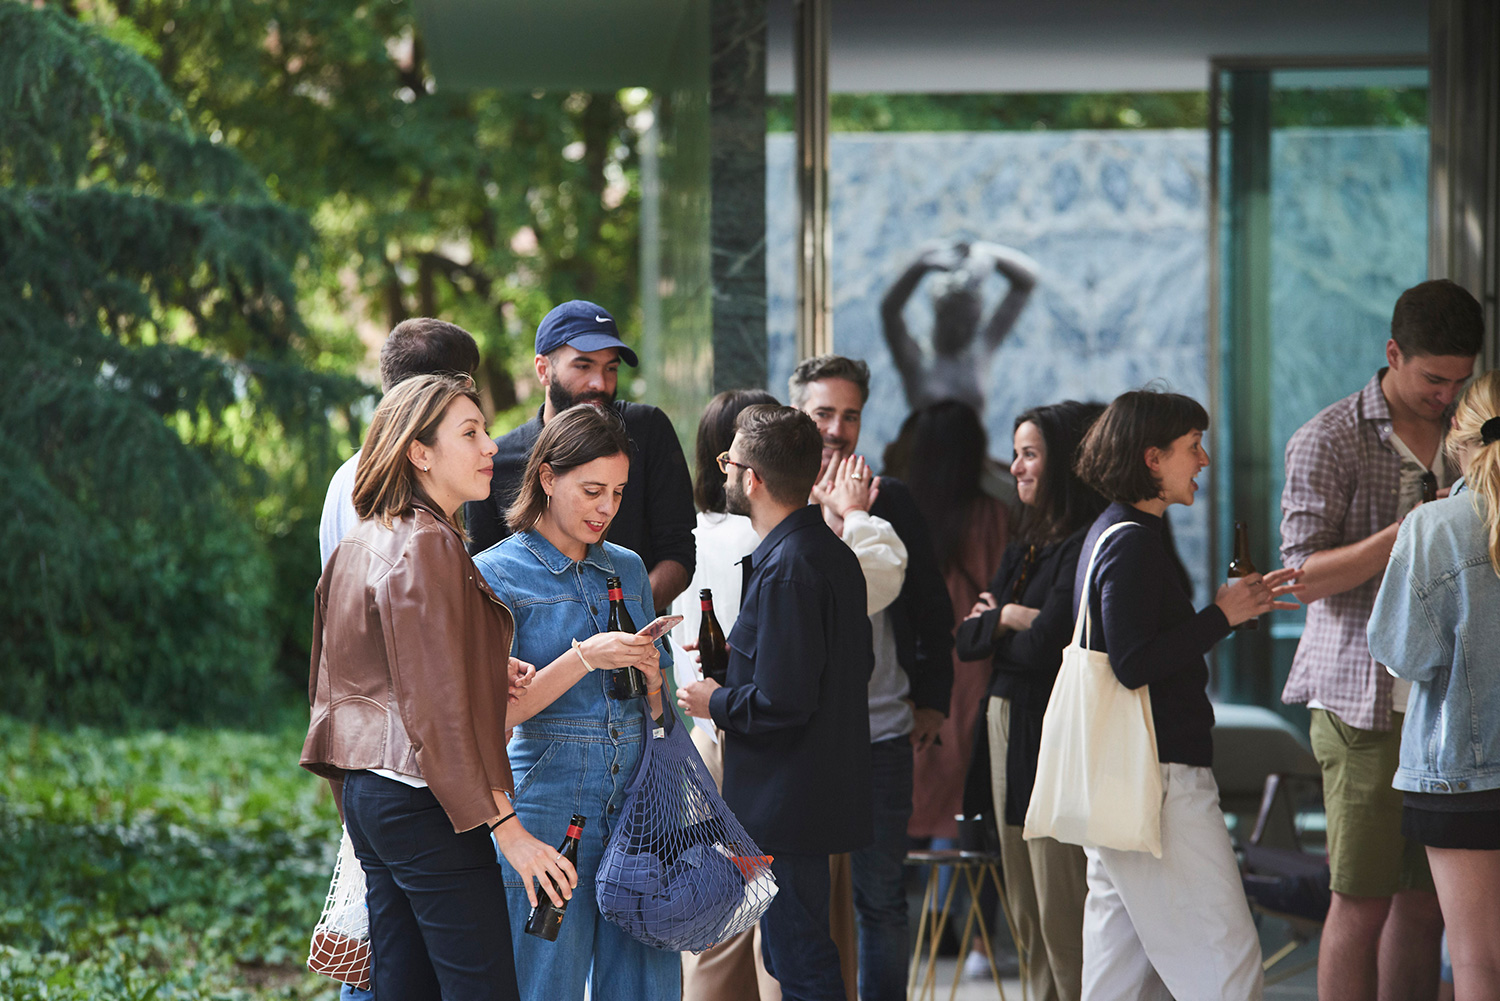 expormim-furniture-outdoor-lapala-chair-event-openhouse-magazine-4